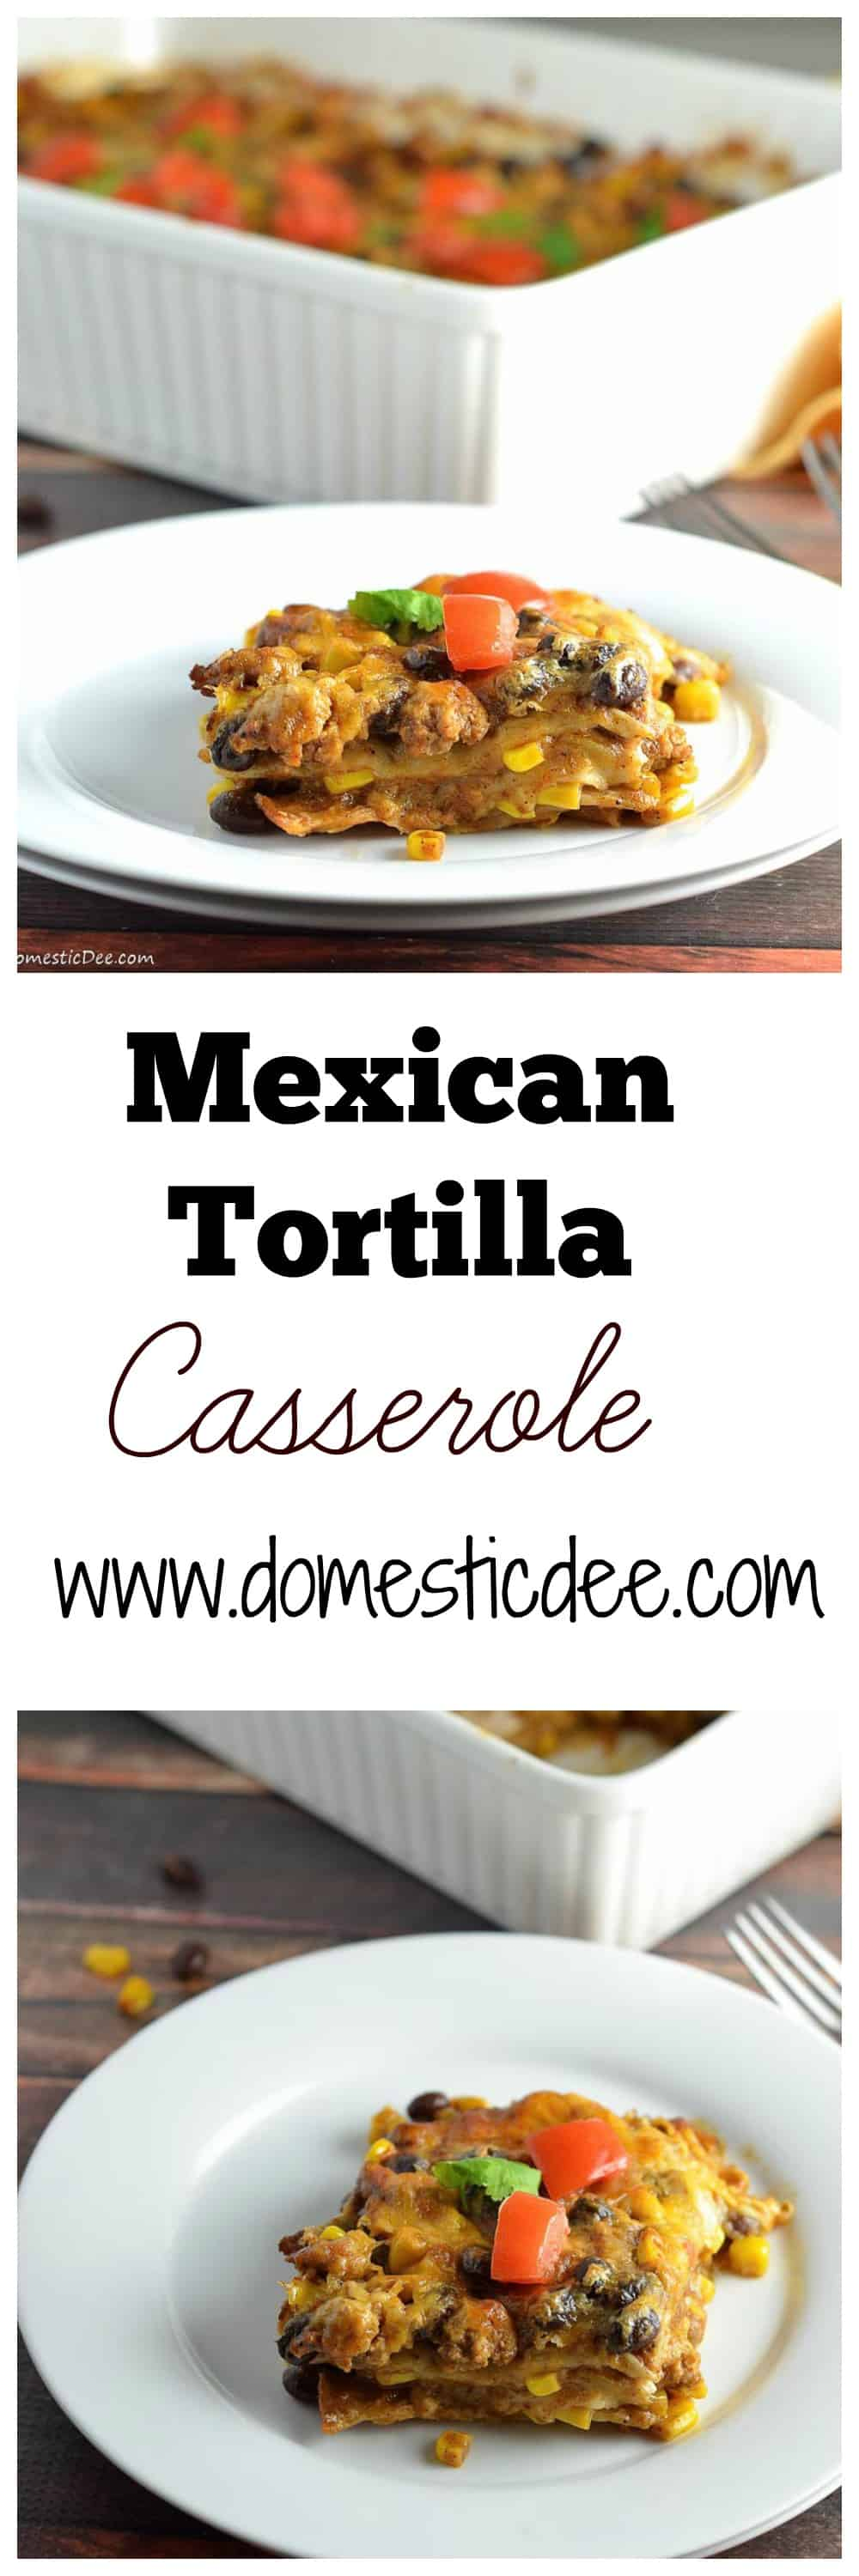 Mexican Tortilla Casserole - This easy, delicious, and flavorful Mexican Tortilla Casserole will have the family running back for seconds and thirds. www.domesticdee.com